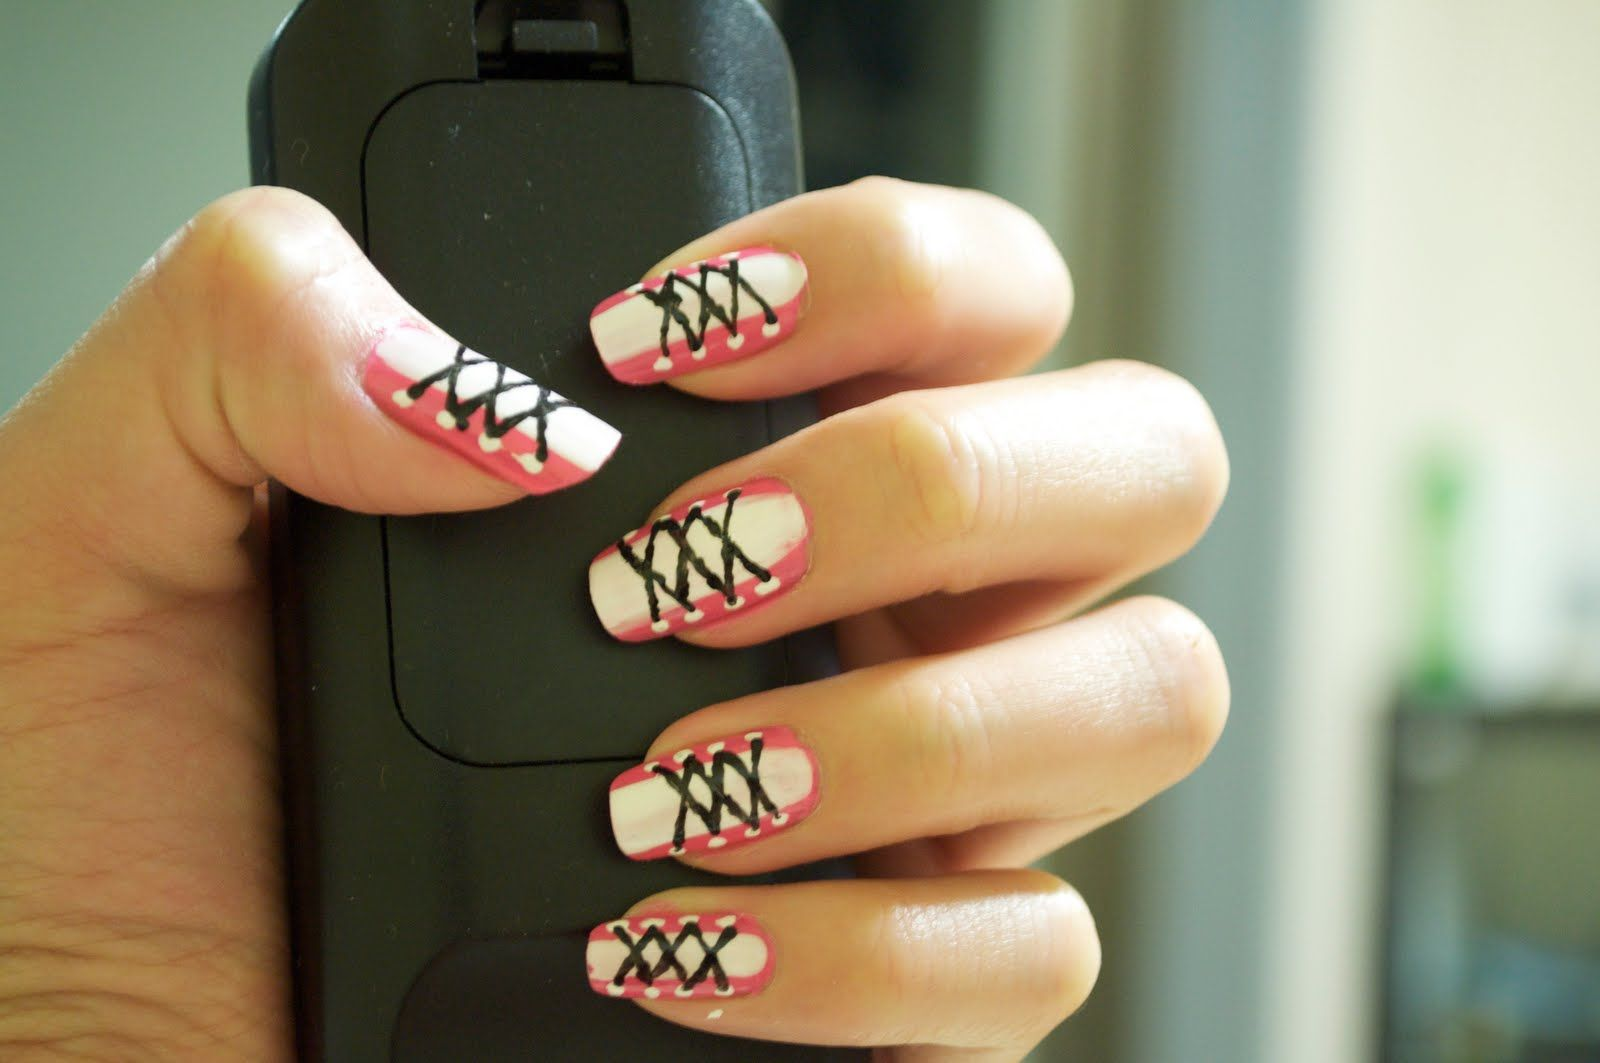 nail art products - Google Search | Nails Delights | Pinterest